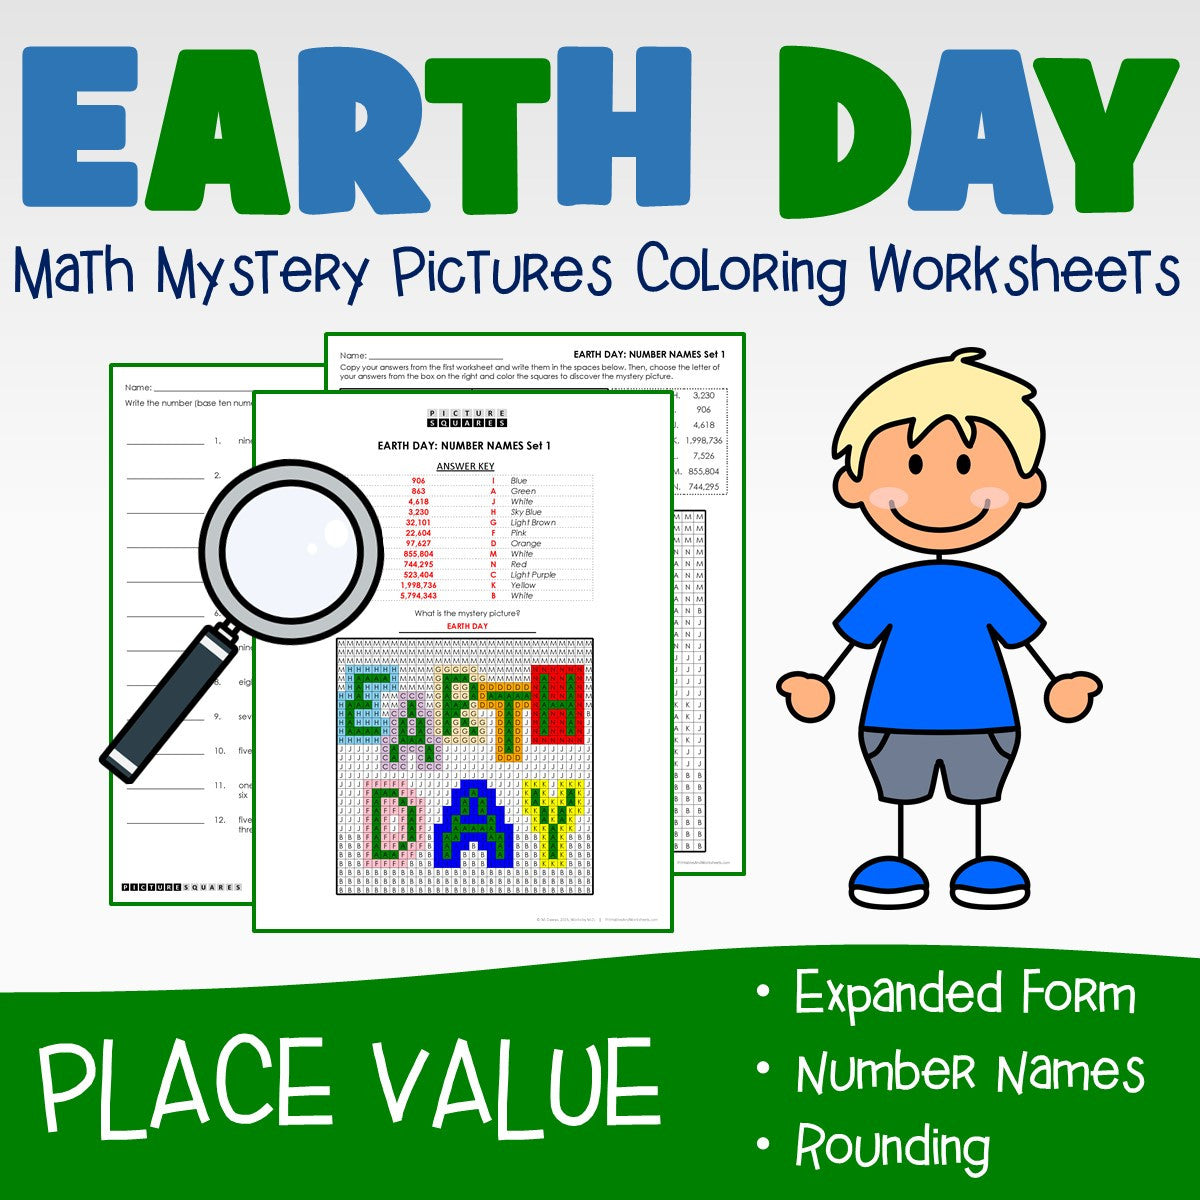 Earth Day Place Value Coloring Worksheets